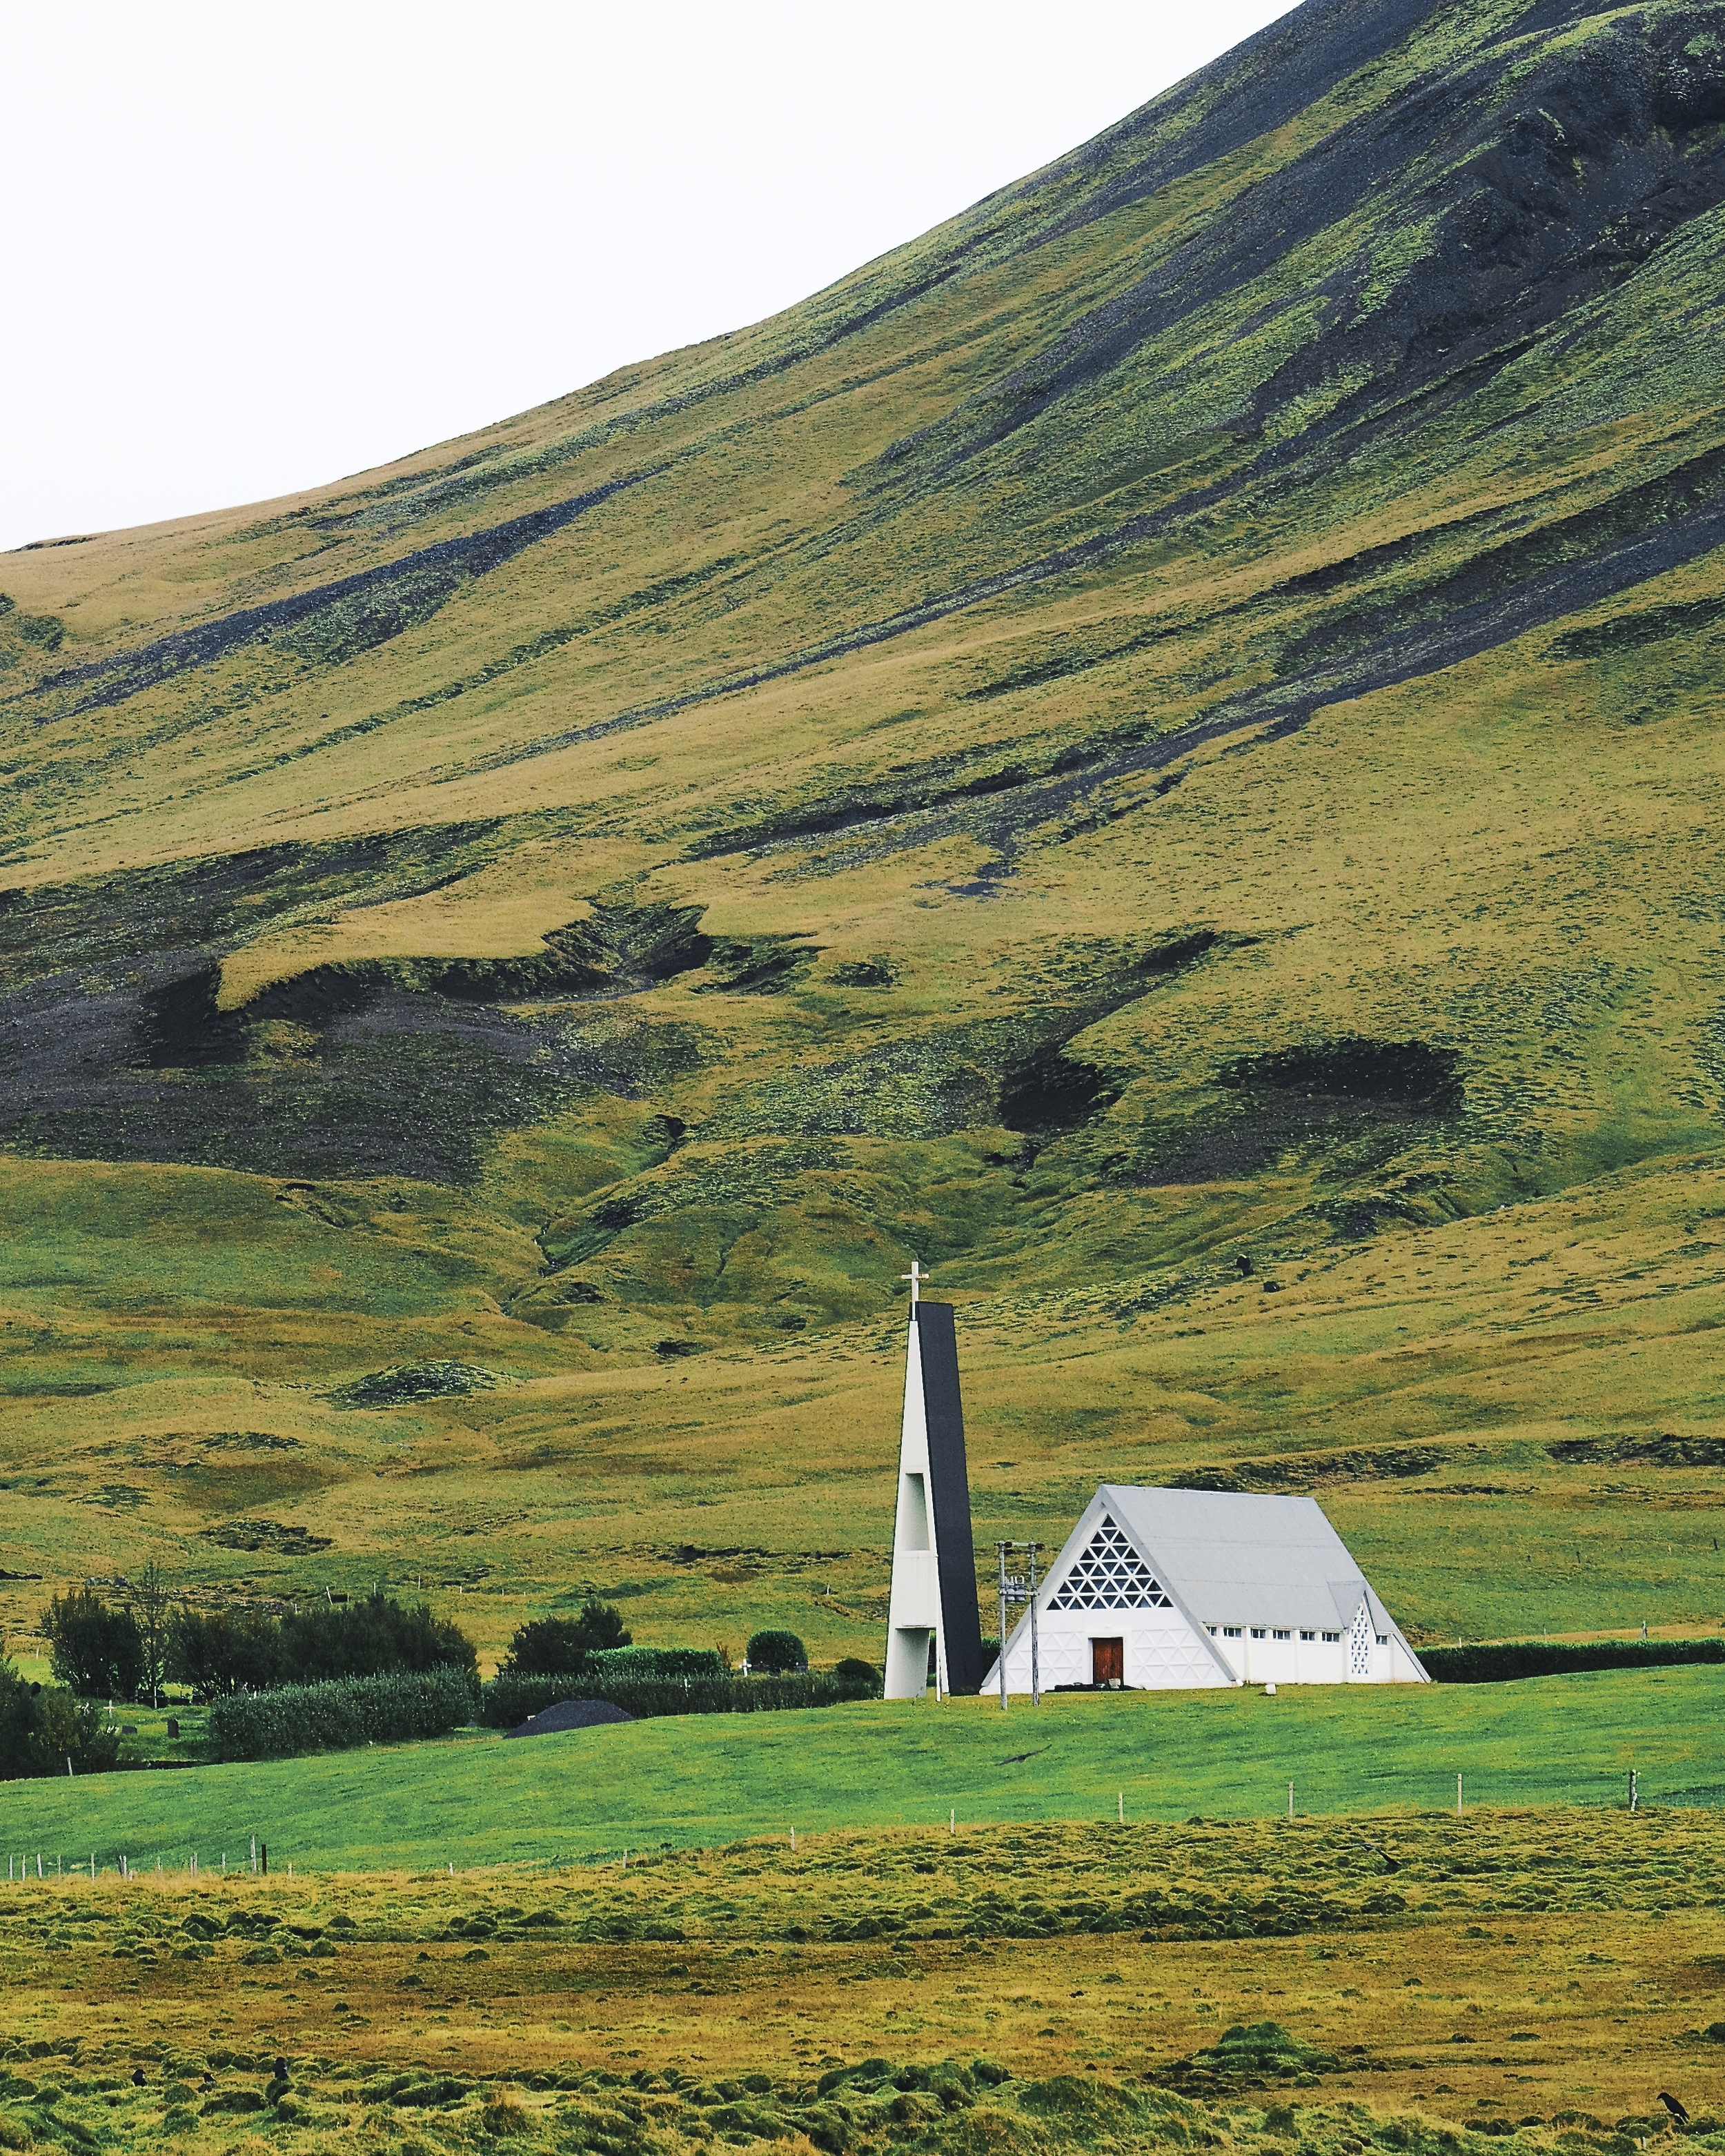 Just another wonderful church in the hills.  Fuji: f8 @ 143mm, 1/800, ISO800